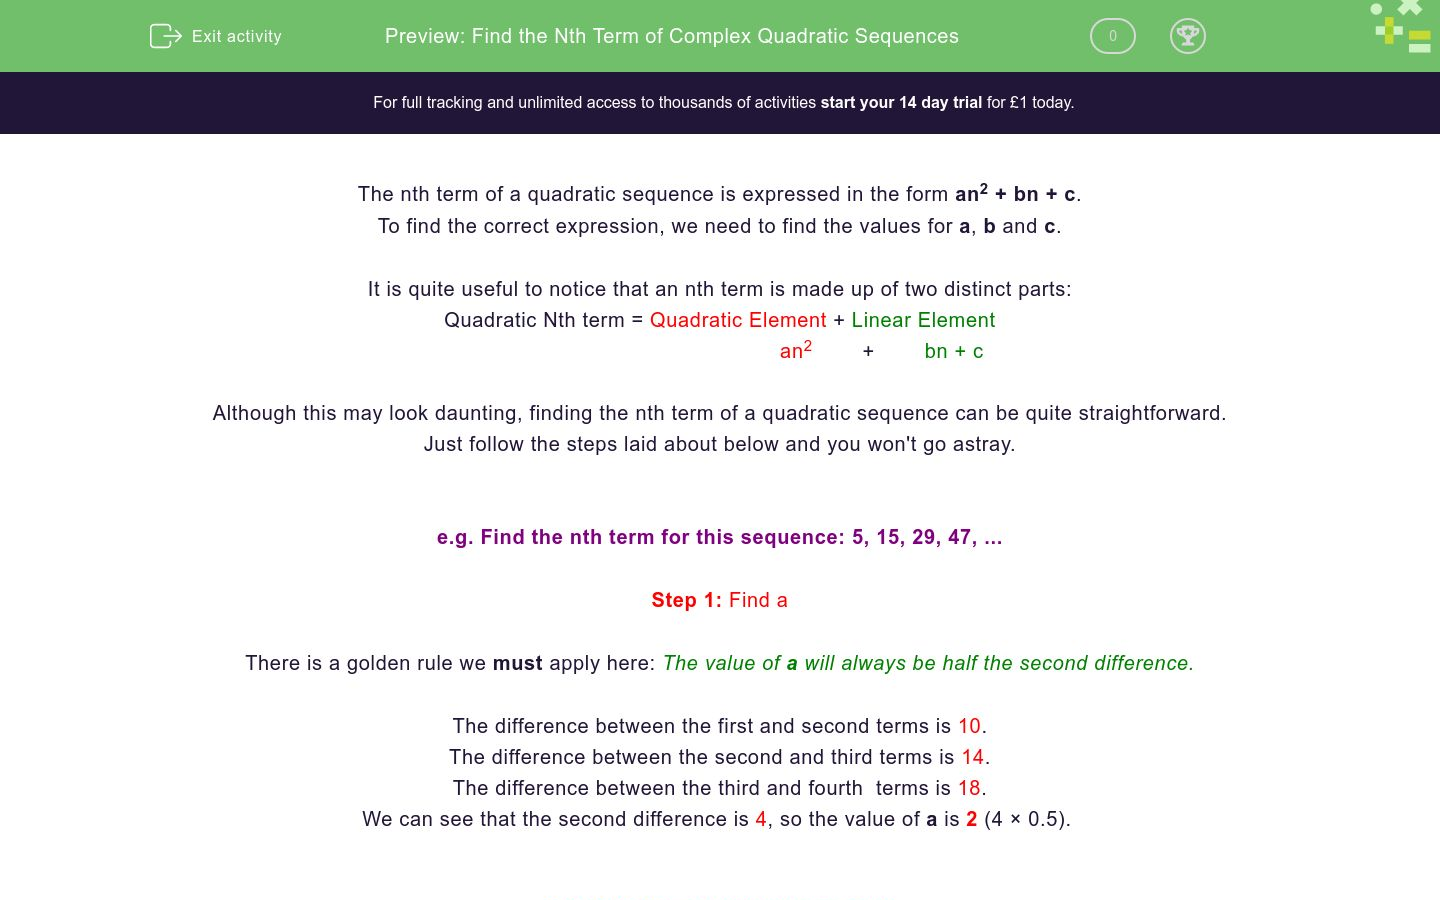 'Find the Nth Term of Complex Quadratic Sequences' worksheet